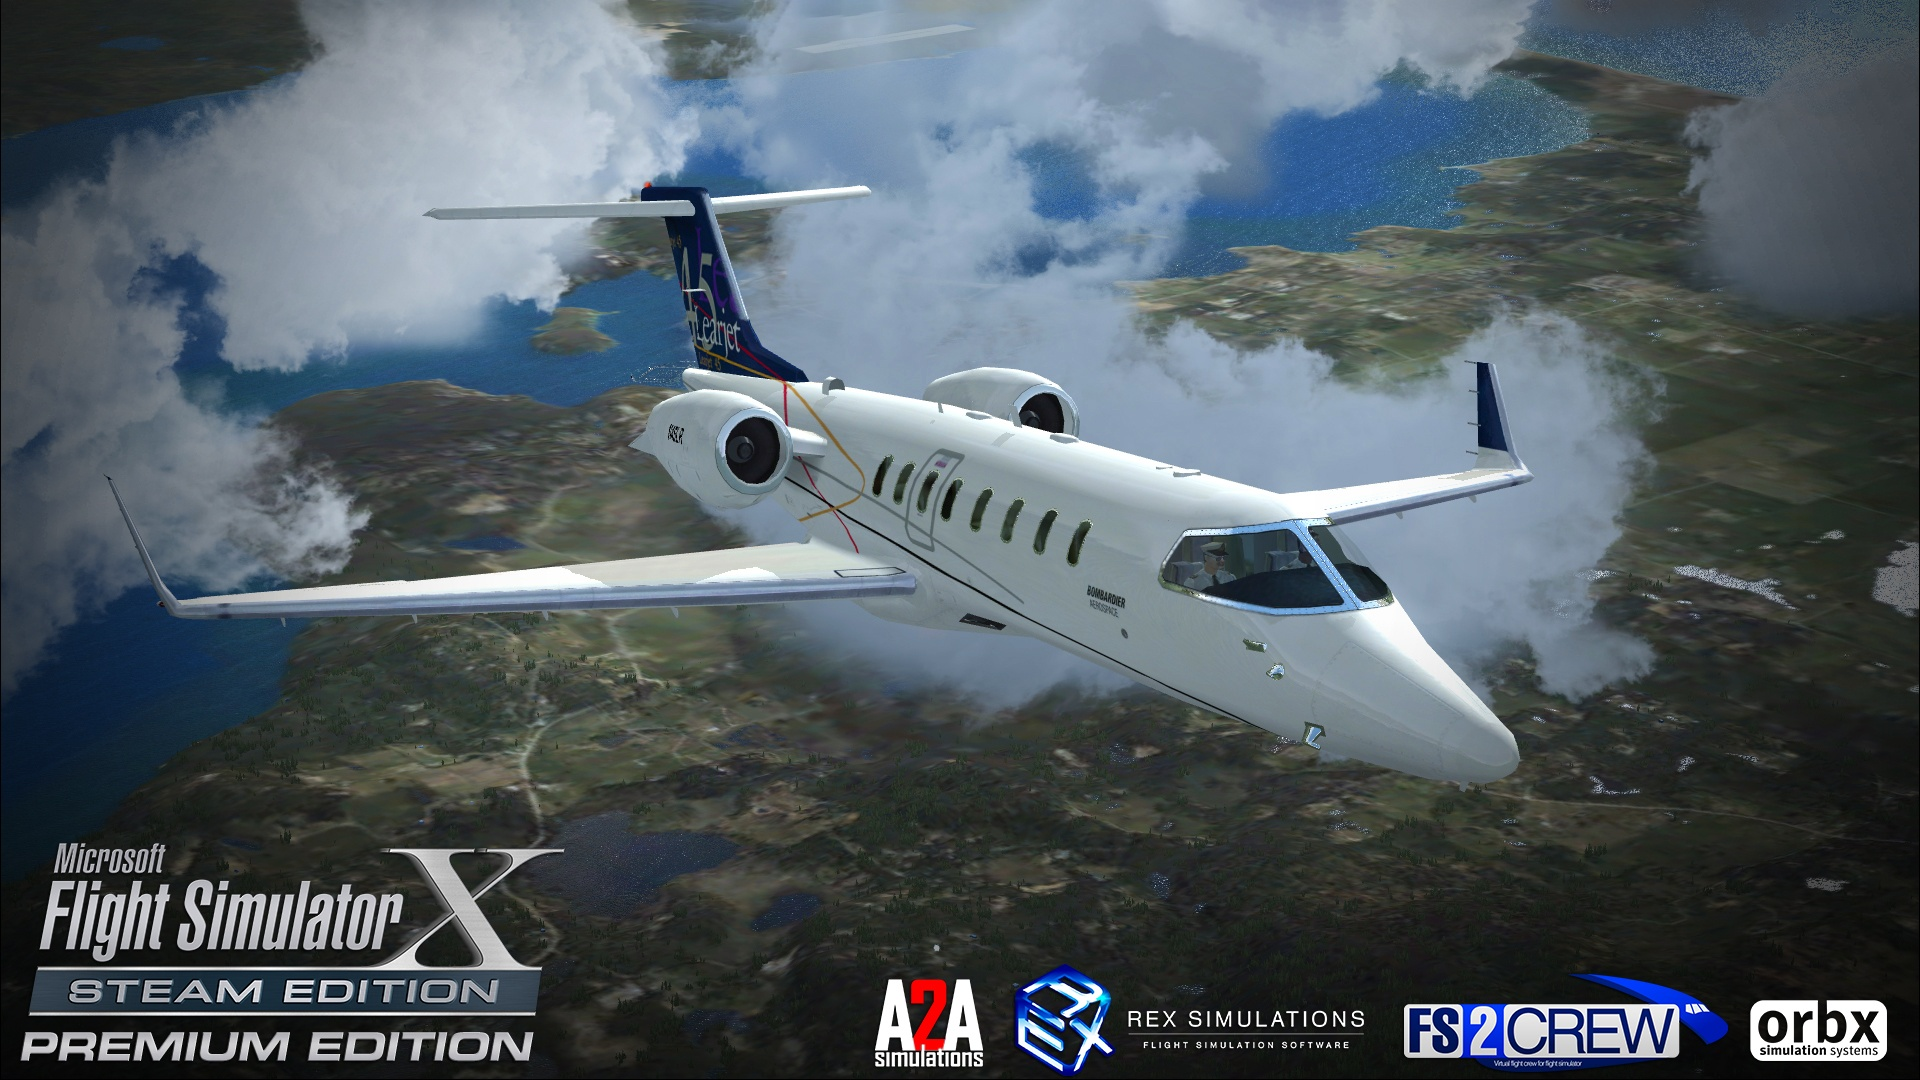 Flight Simulator X Wallpaper: Flight Simulator X: Steam Edition Premium